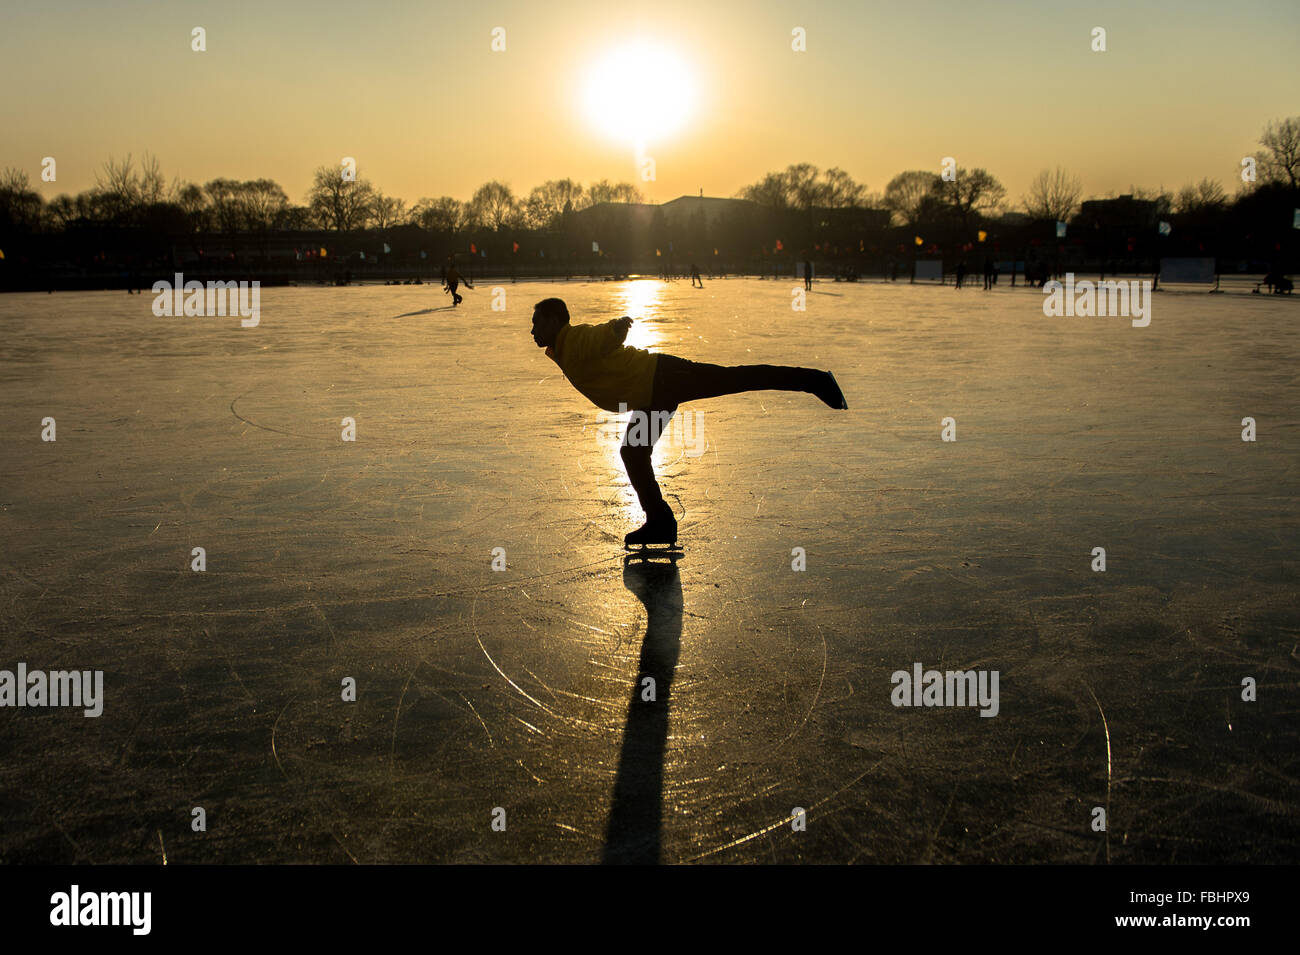 Beijing, China. 5th Jan, 2016. A skating lover performs on a skating rink at Shichahai, a scenic area in Beijing, - Stock Image